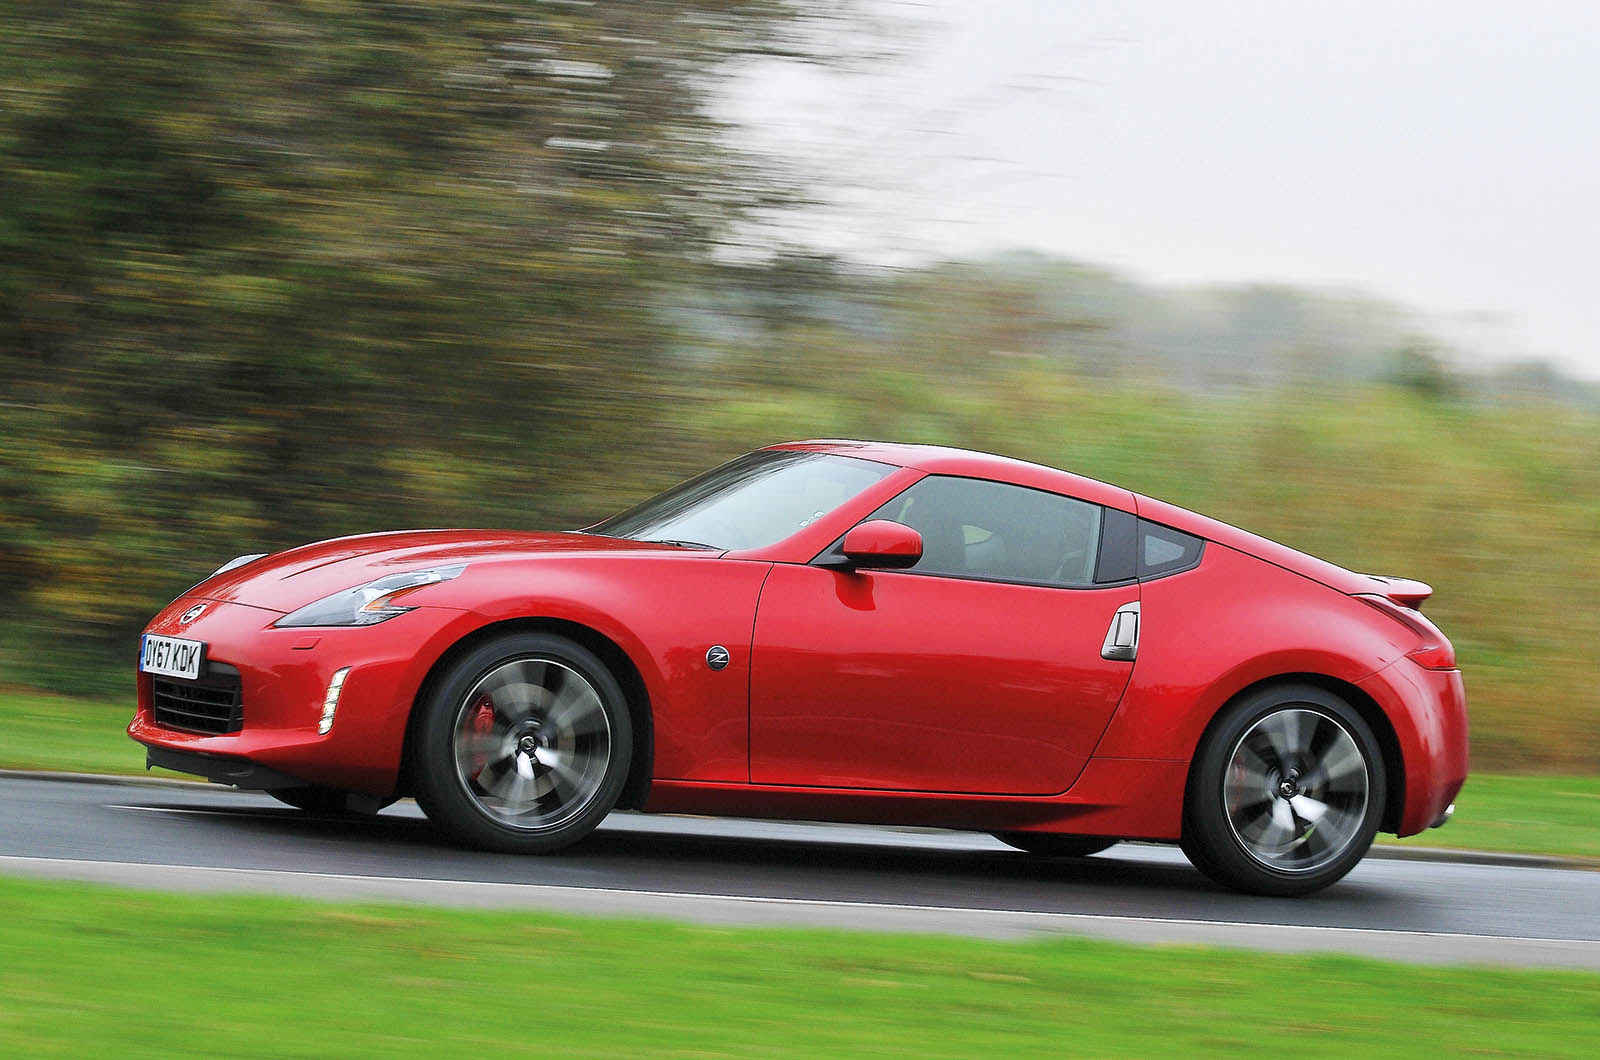 new nissan z sports car to spawn 475bhp v6 nismo model | autocar